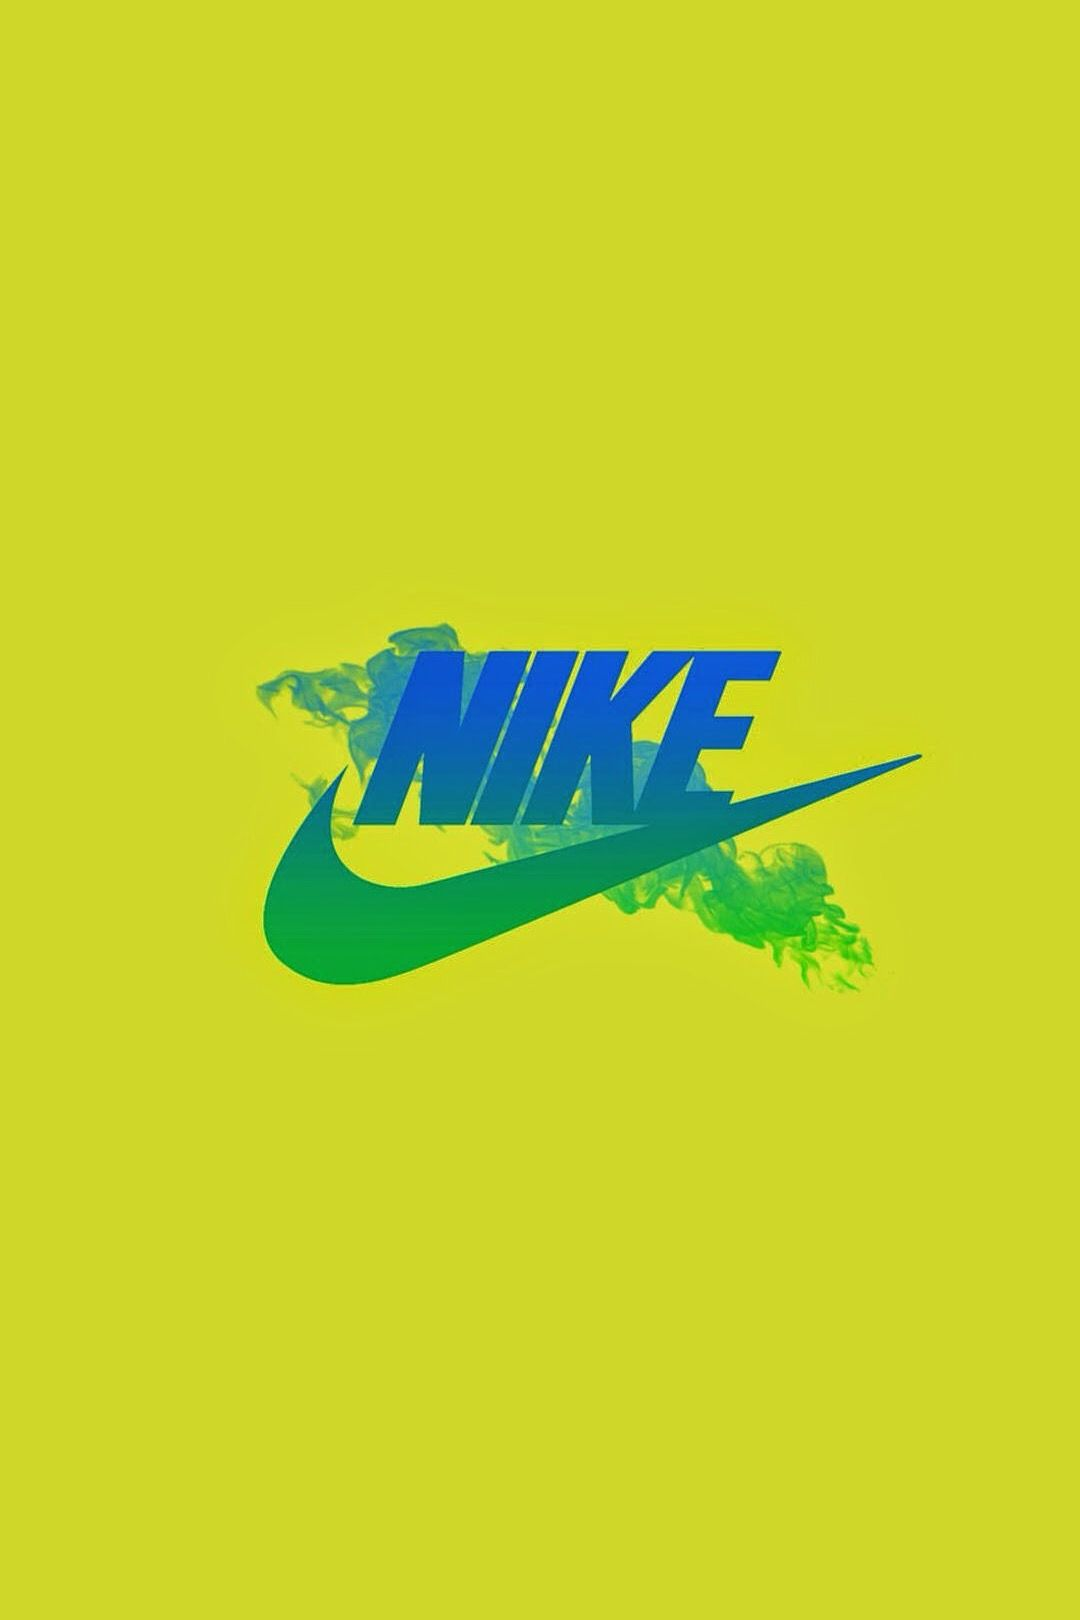 Pin By Drippy Penz On Nike Wallpapers Pinterest Nike Wallpaper